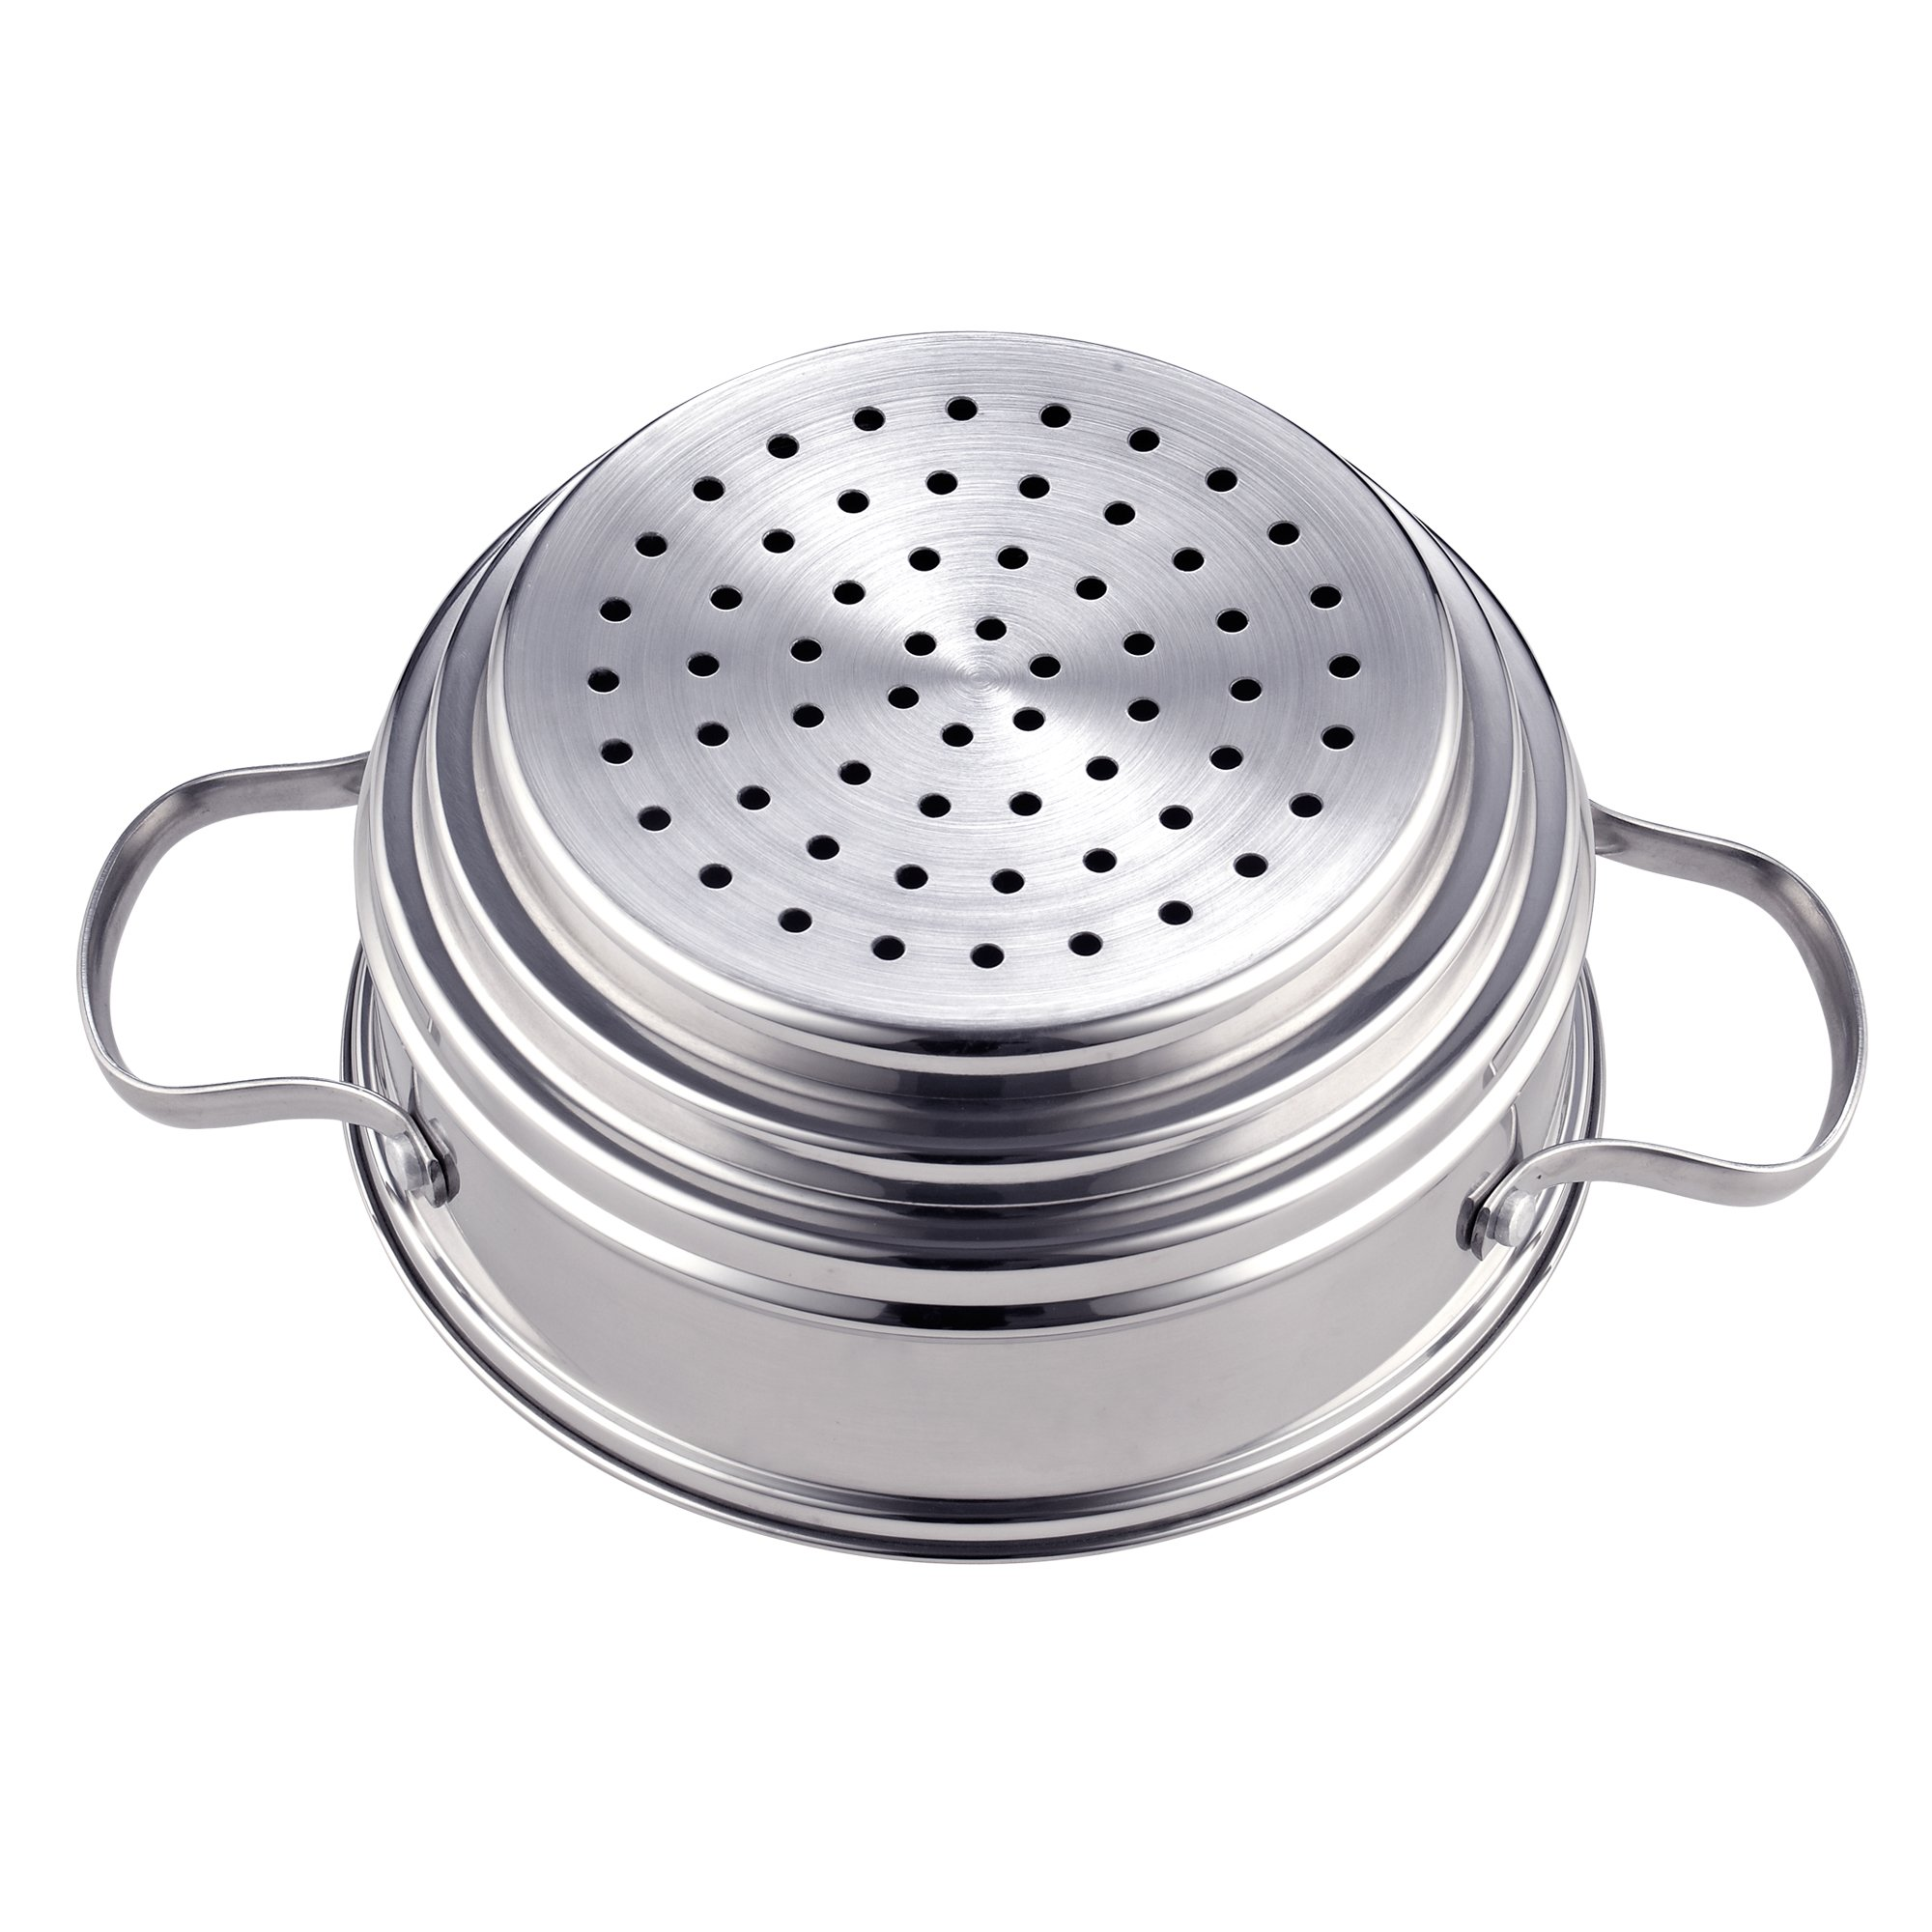 Cook N Home NC-00313 Double Boiler Steamer 4Qt silver by Cook N Home (Image #7)